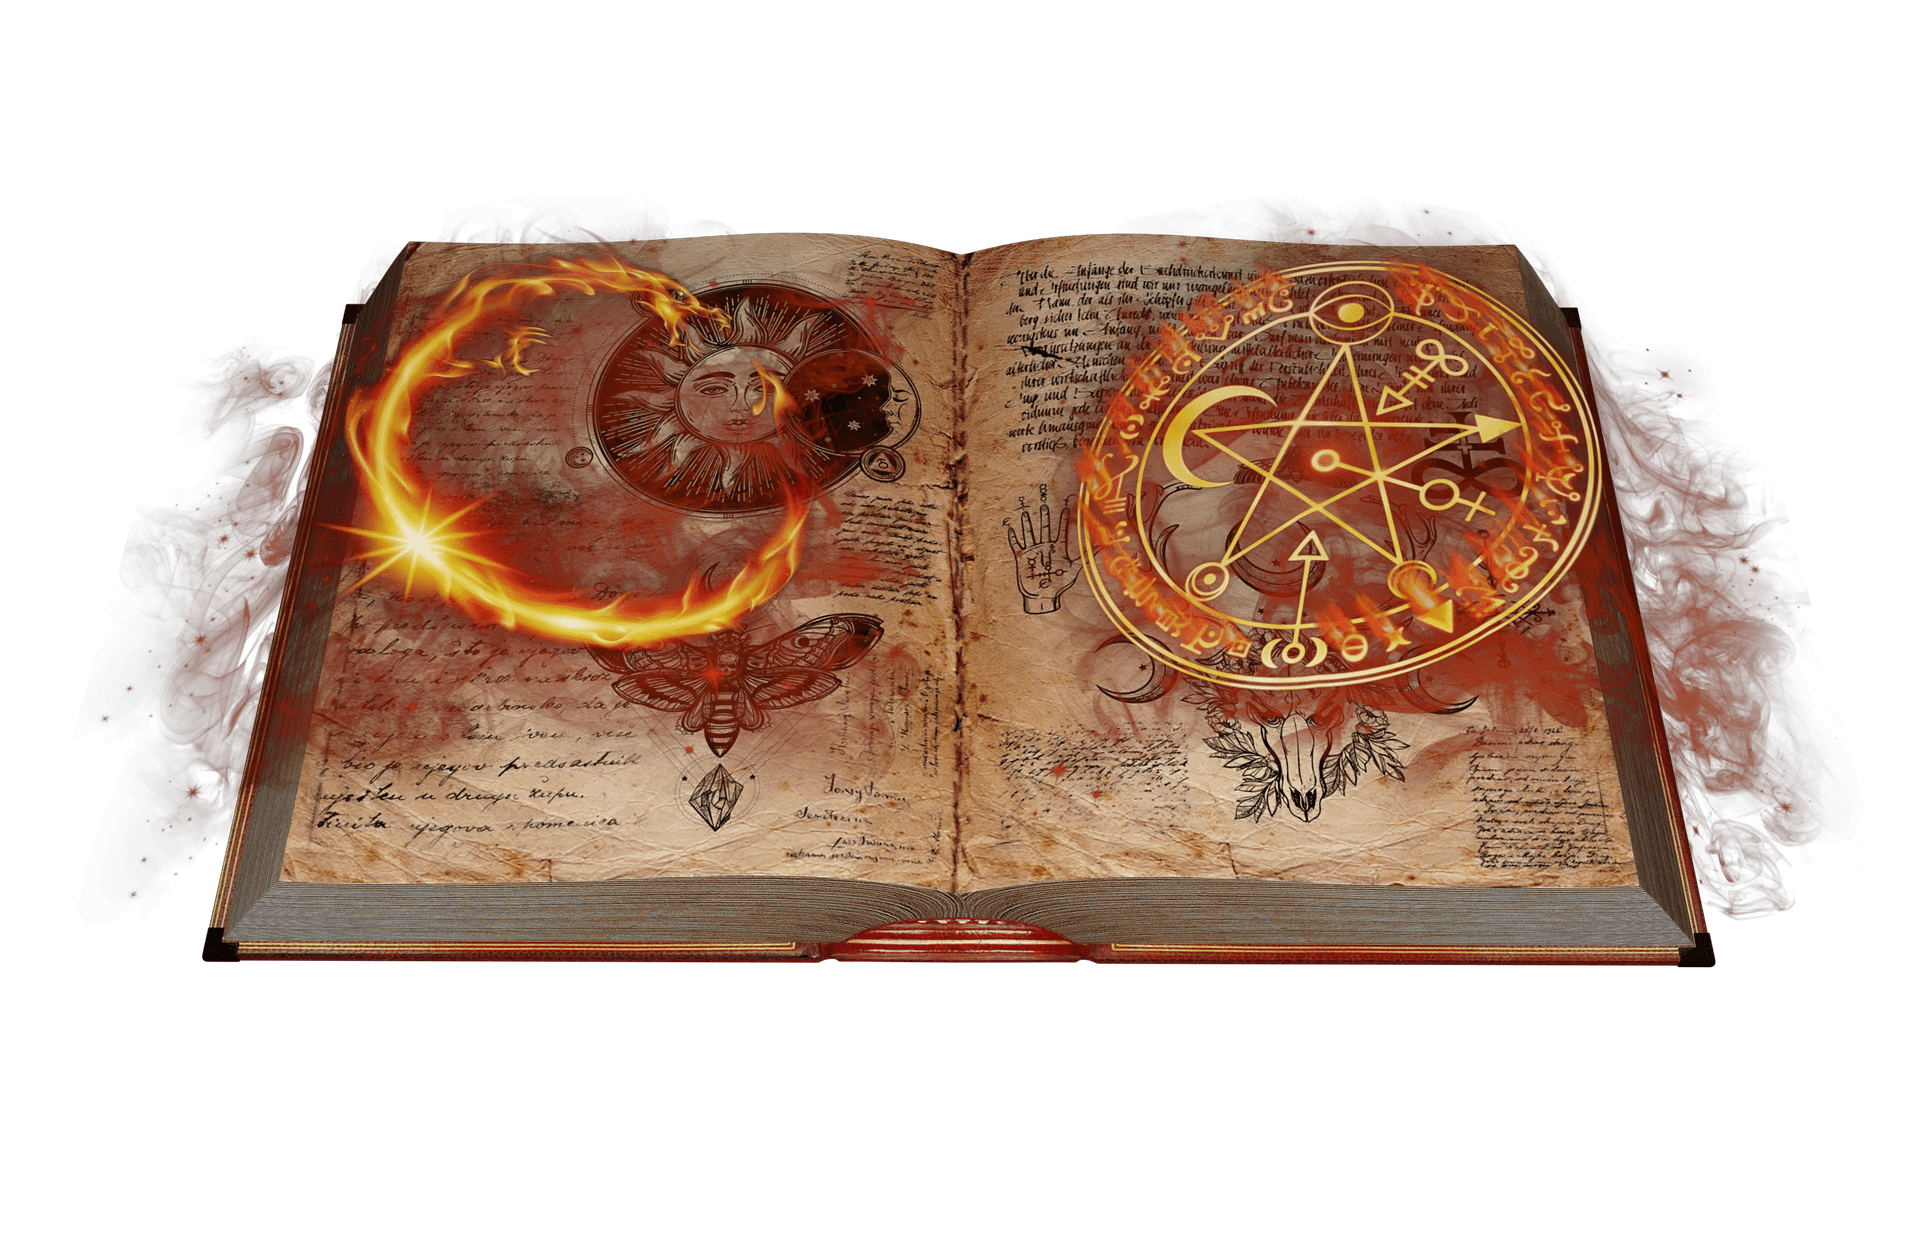 A Witch S Guide To Escape A Practical Compendium Of Portal Fantasies Apex Magazine